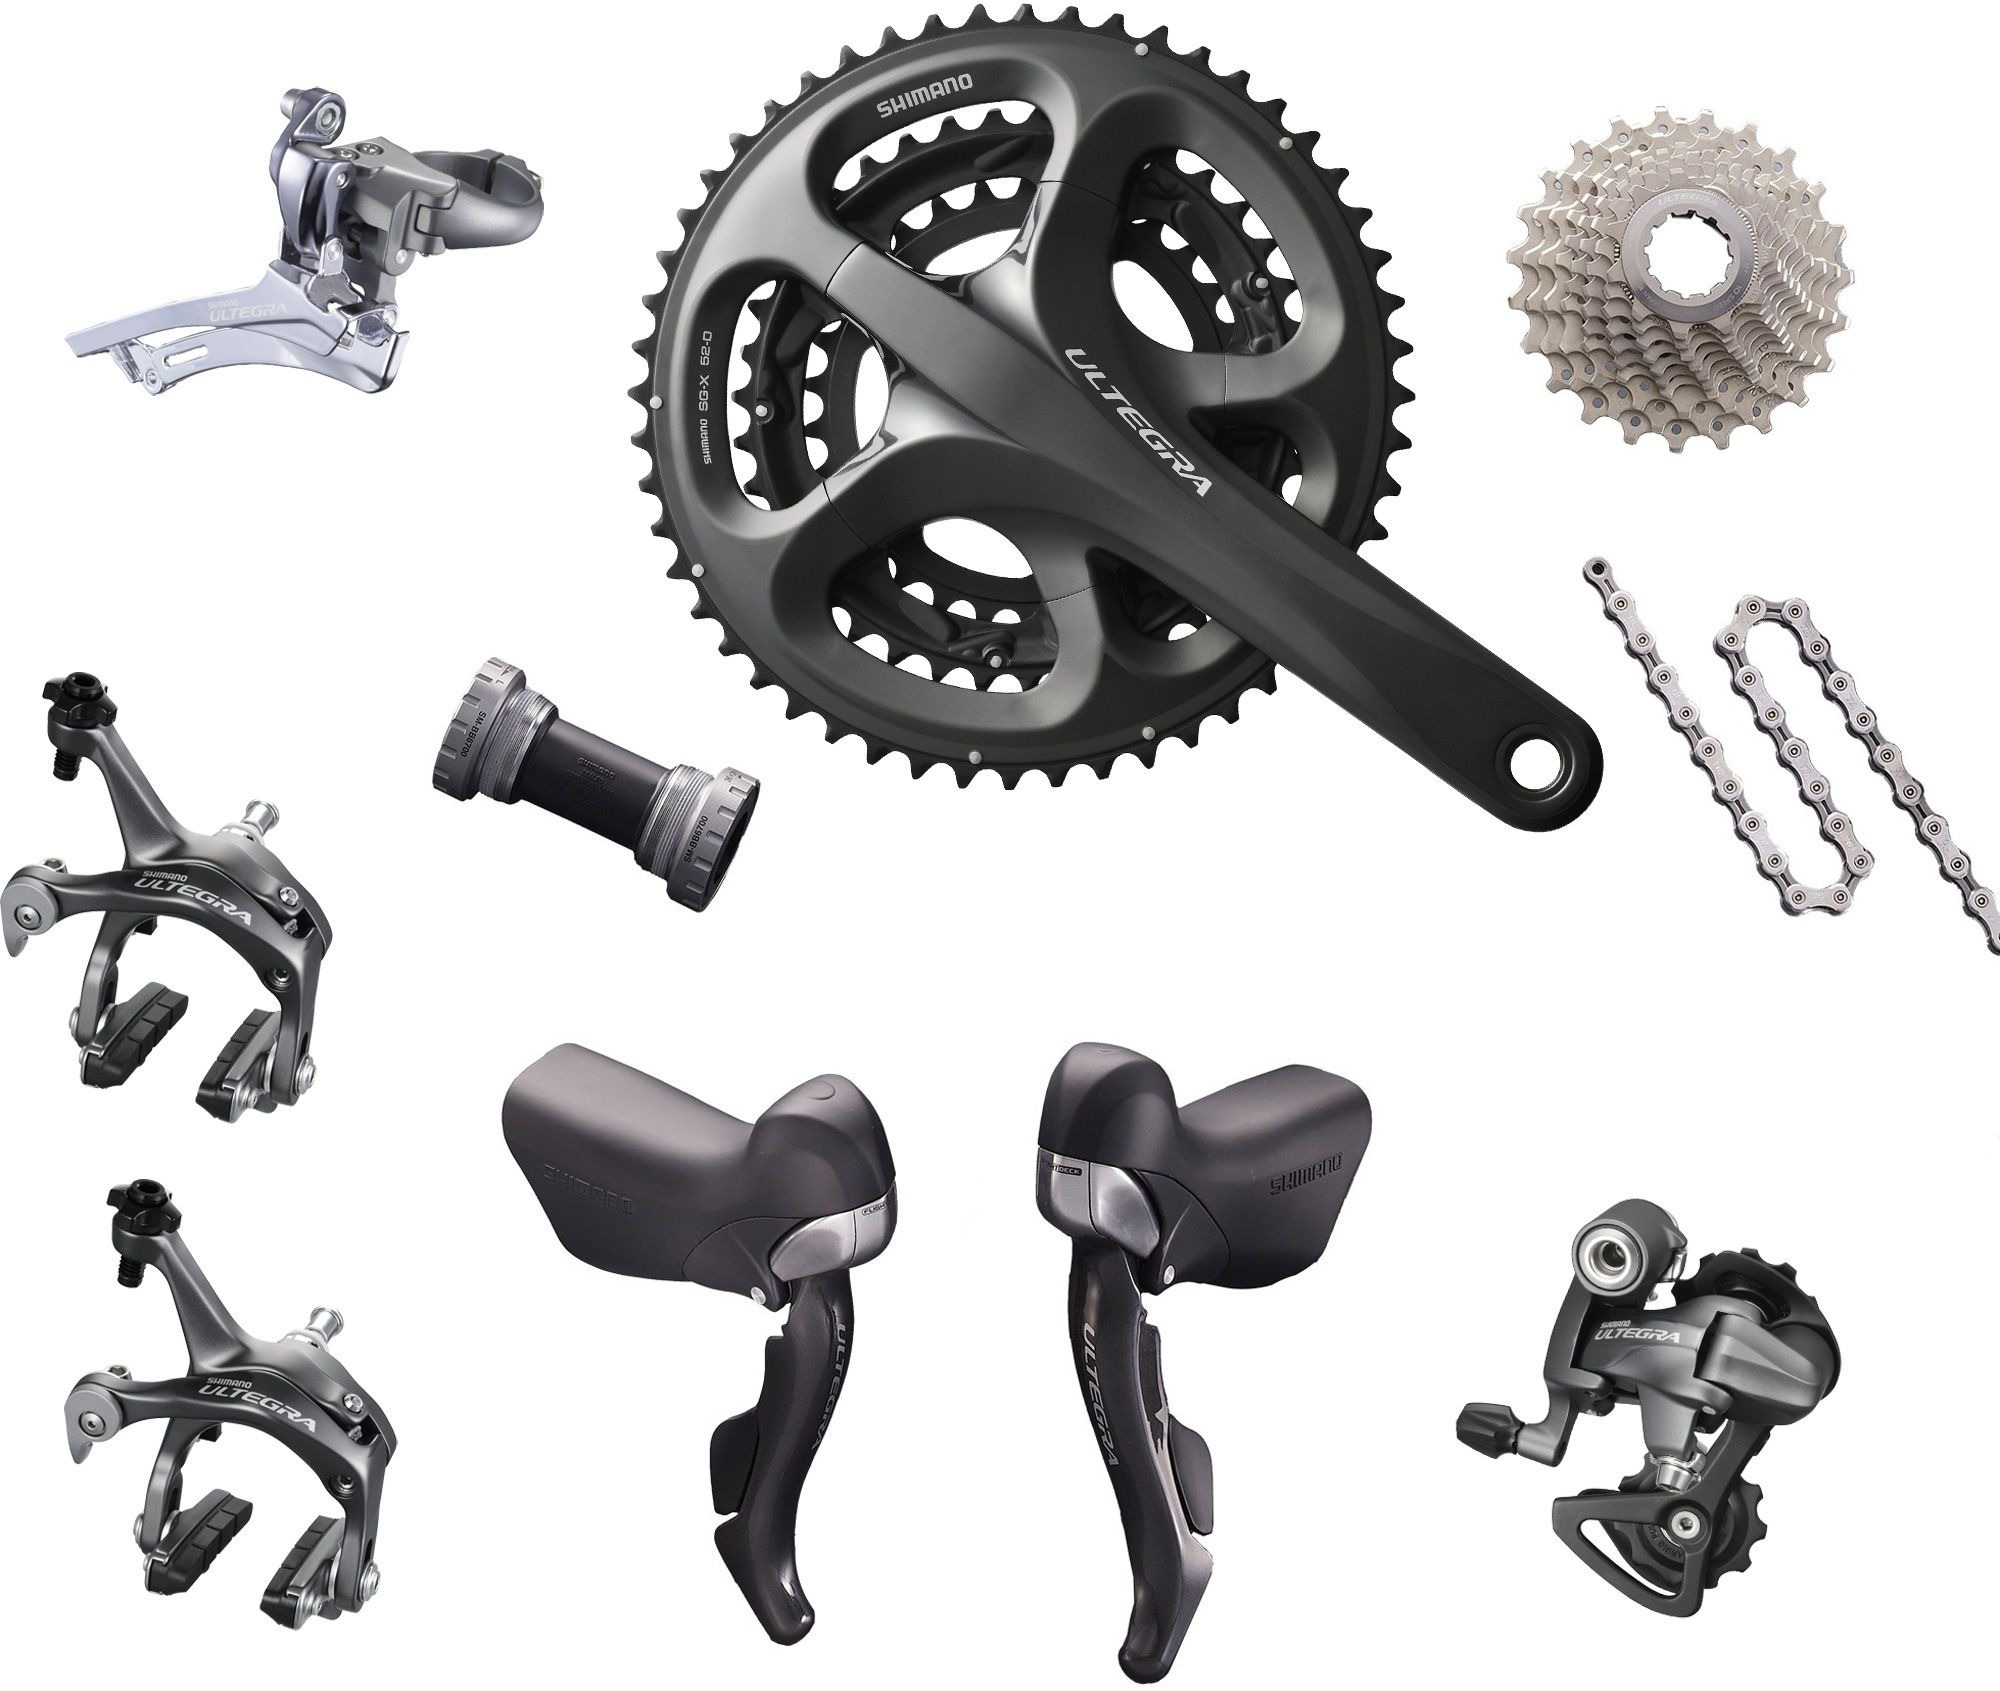 03b1692e7fc Shimano Ultegra 10-speed Triple Components Kit - Oliver's Cycle ...